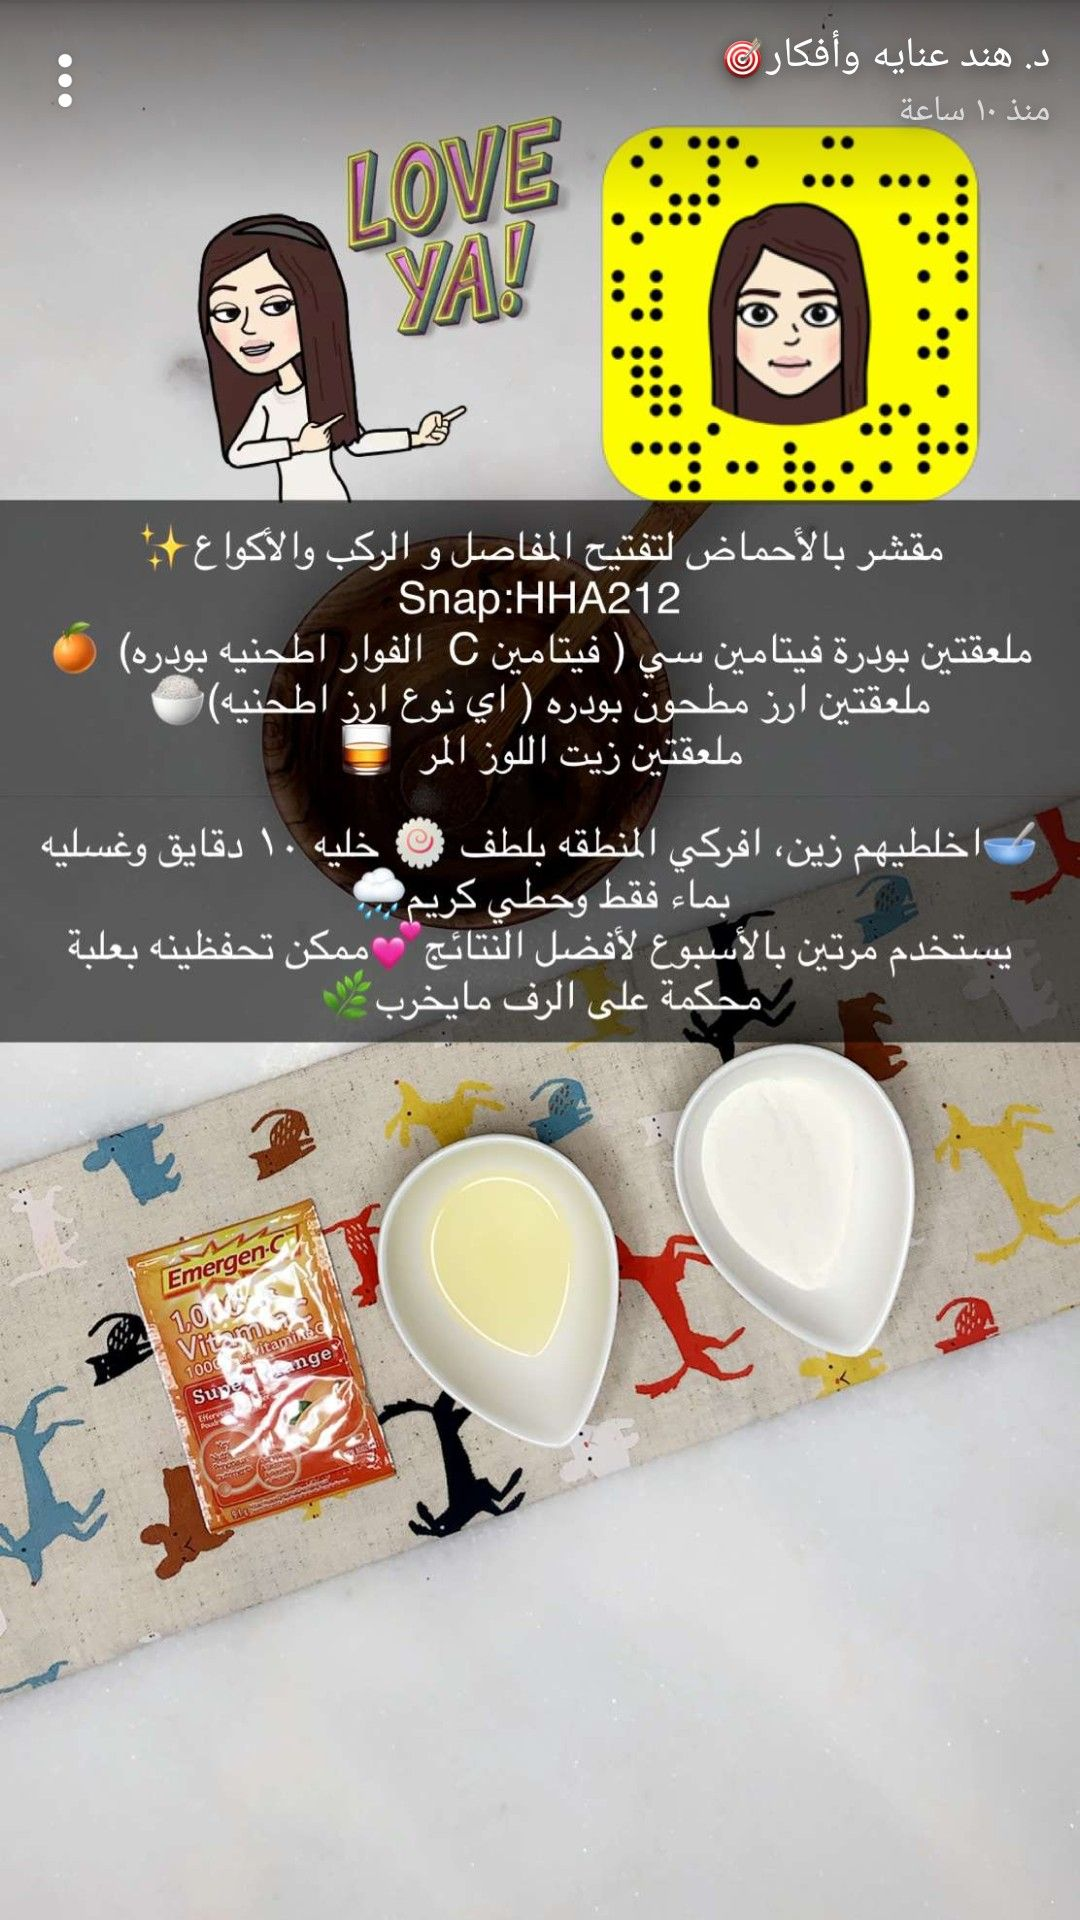 Pin By وهم On د هند عنايه وأفكار Hair Care Oils Beauty Skin Care Routine Beauty Recipes Hair